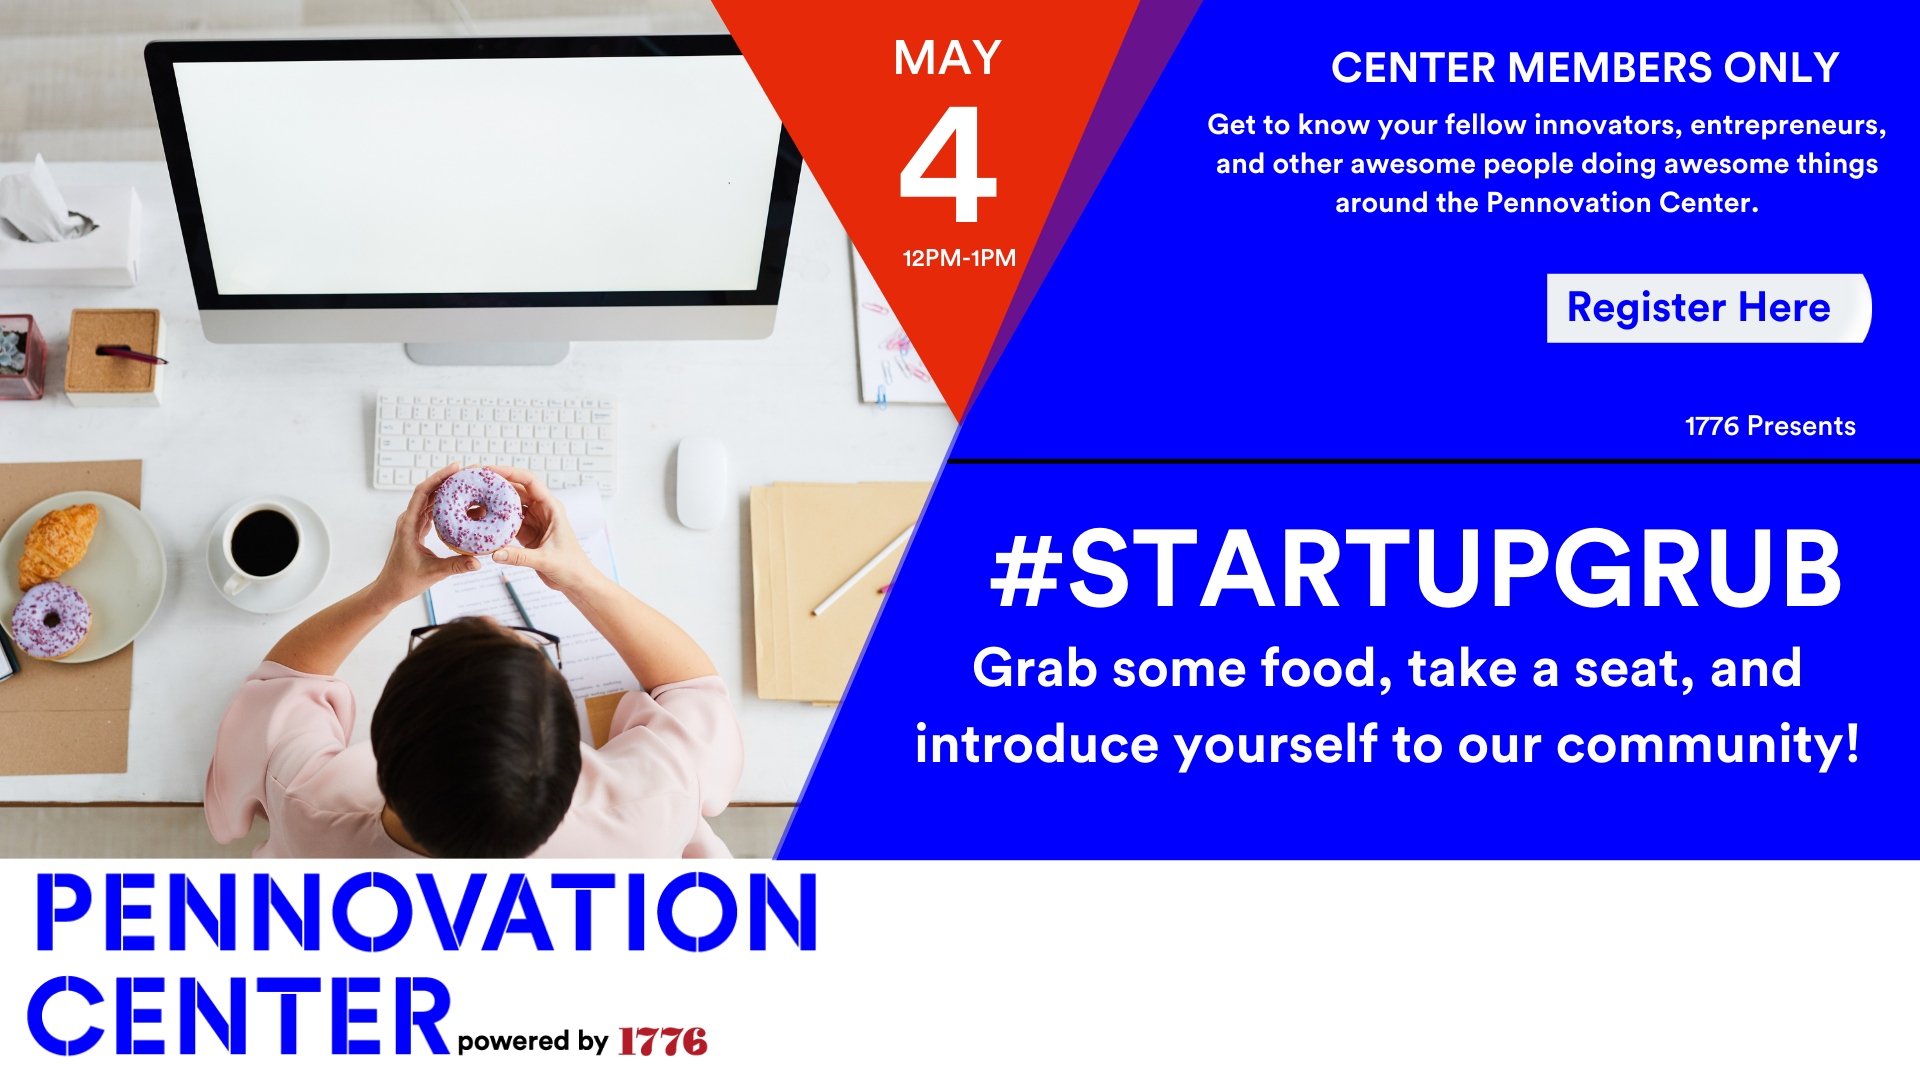 1776 Presents: #StartupGrub @Pennovation - May 4